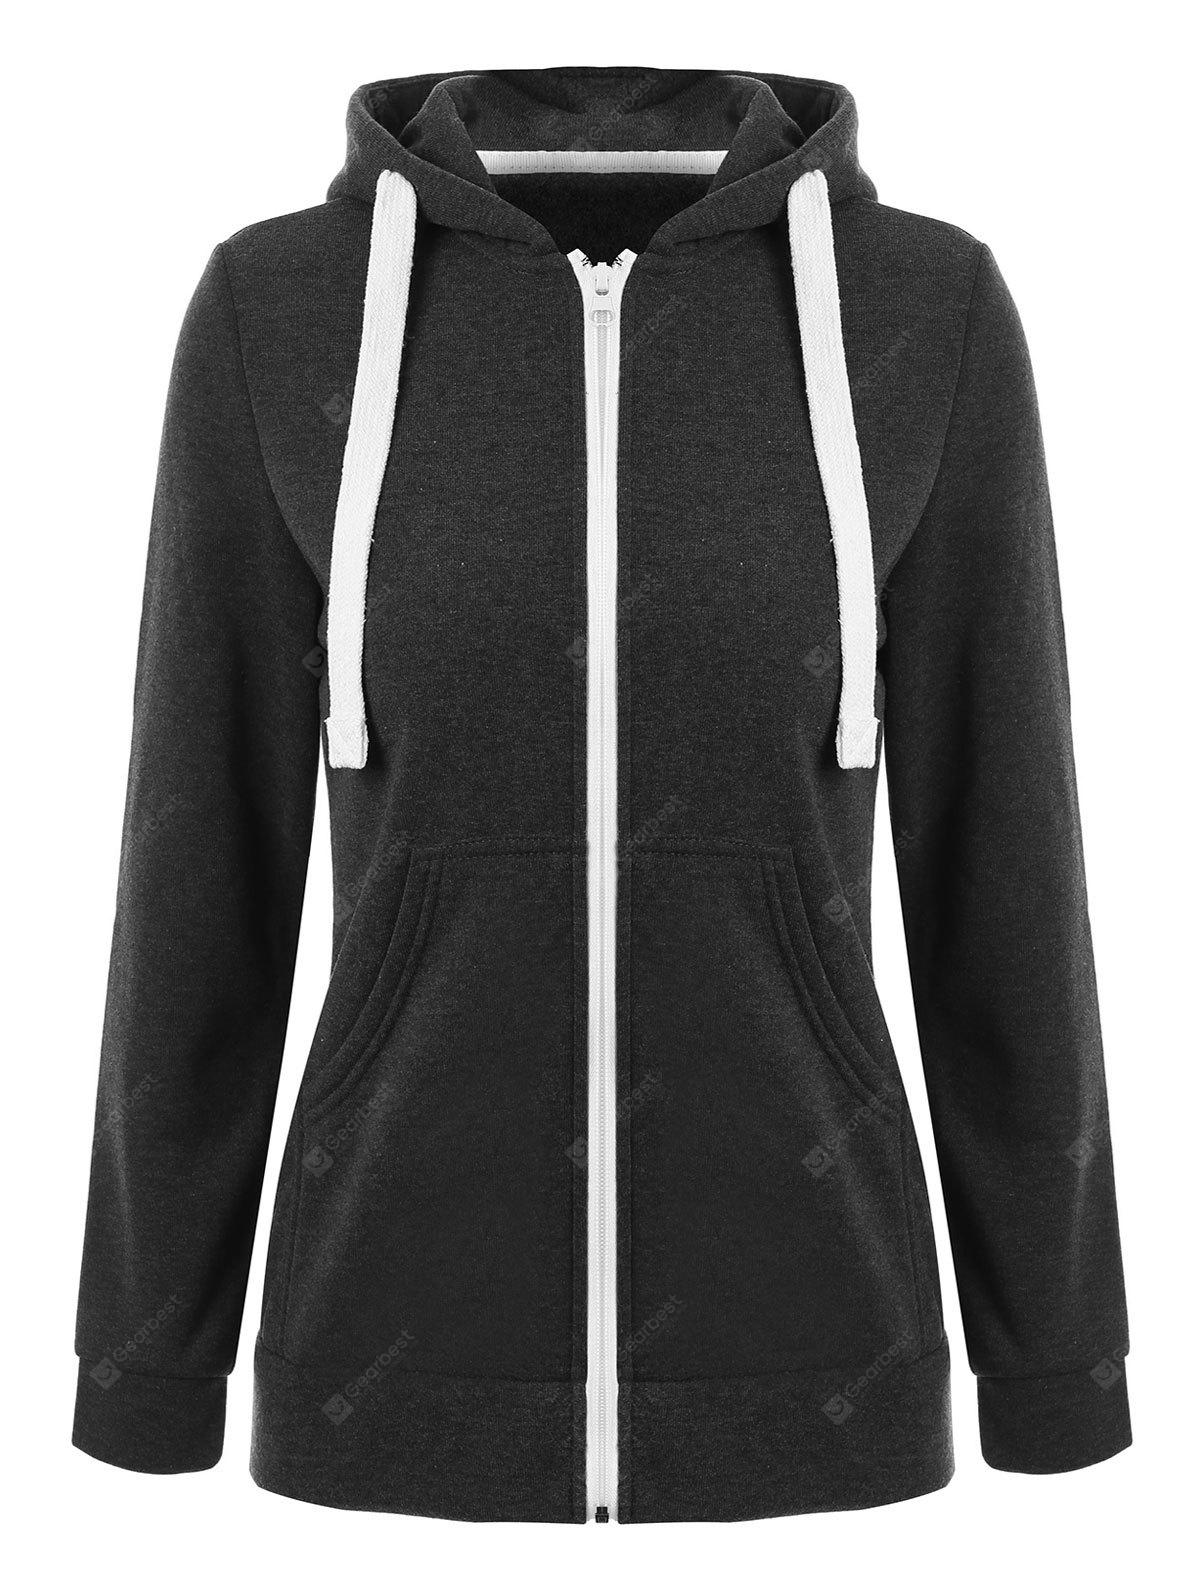 Drawstring Front Pocket Zip Up Hoodie